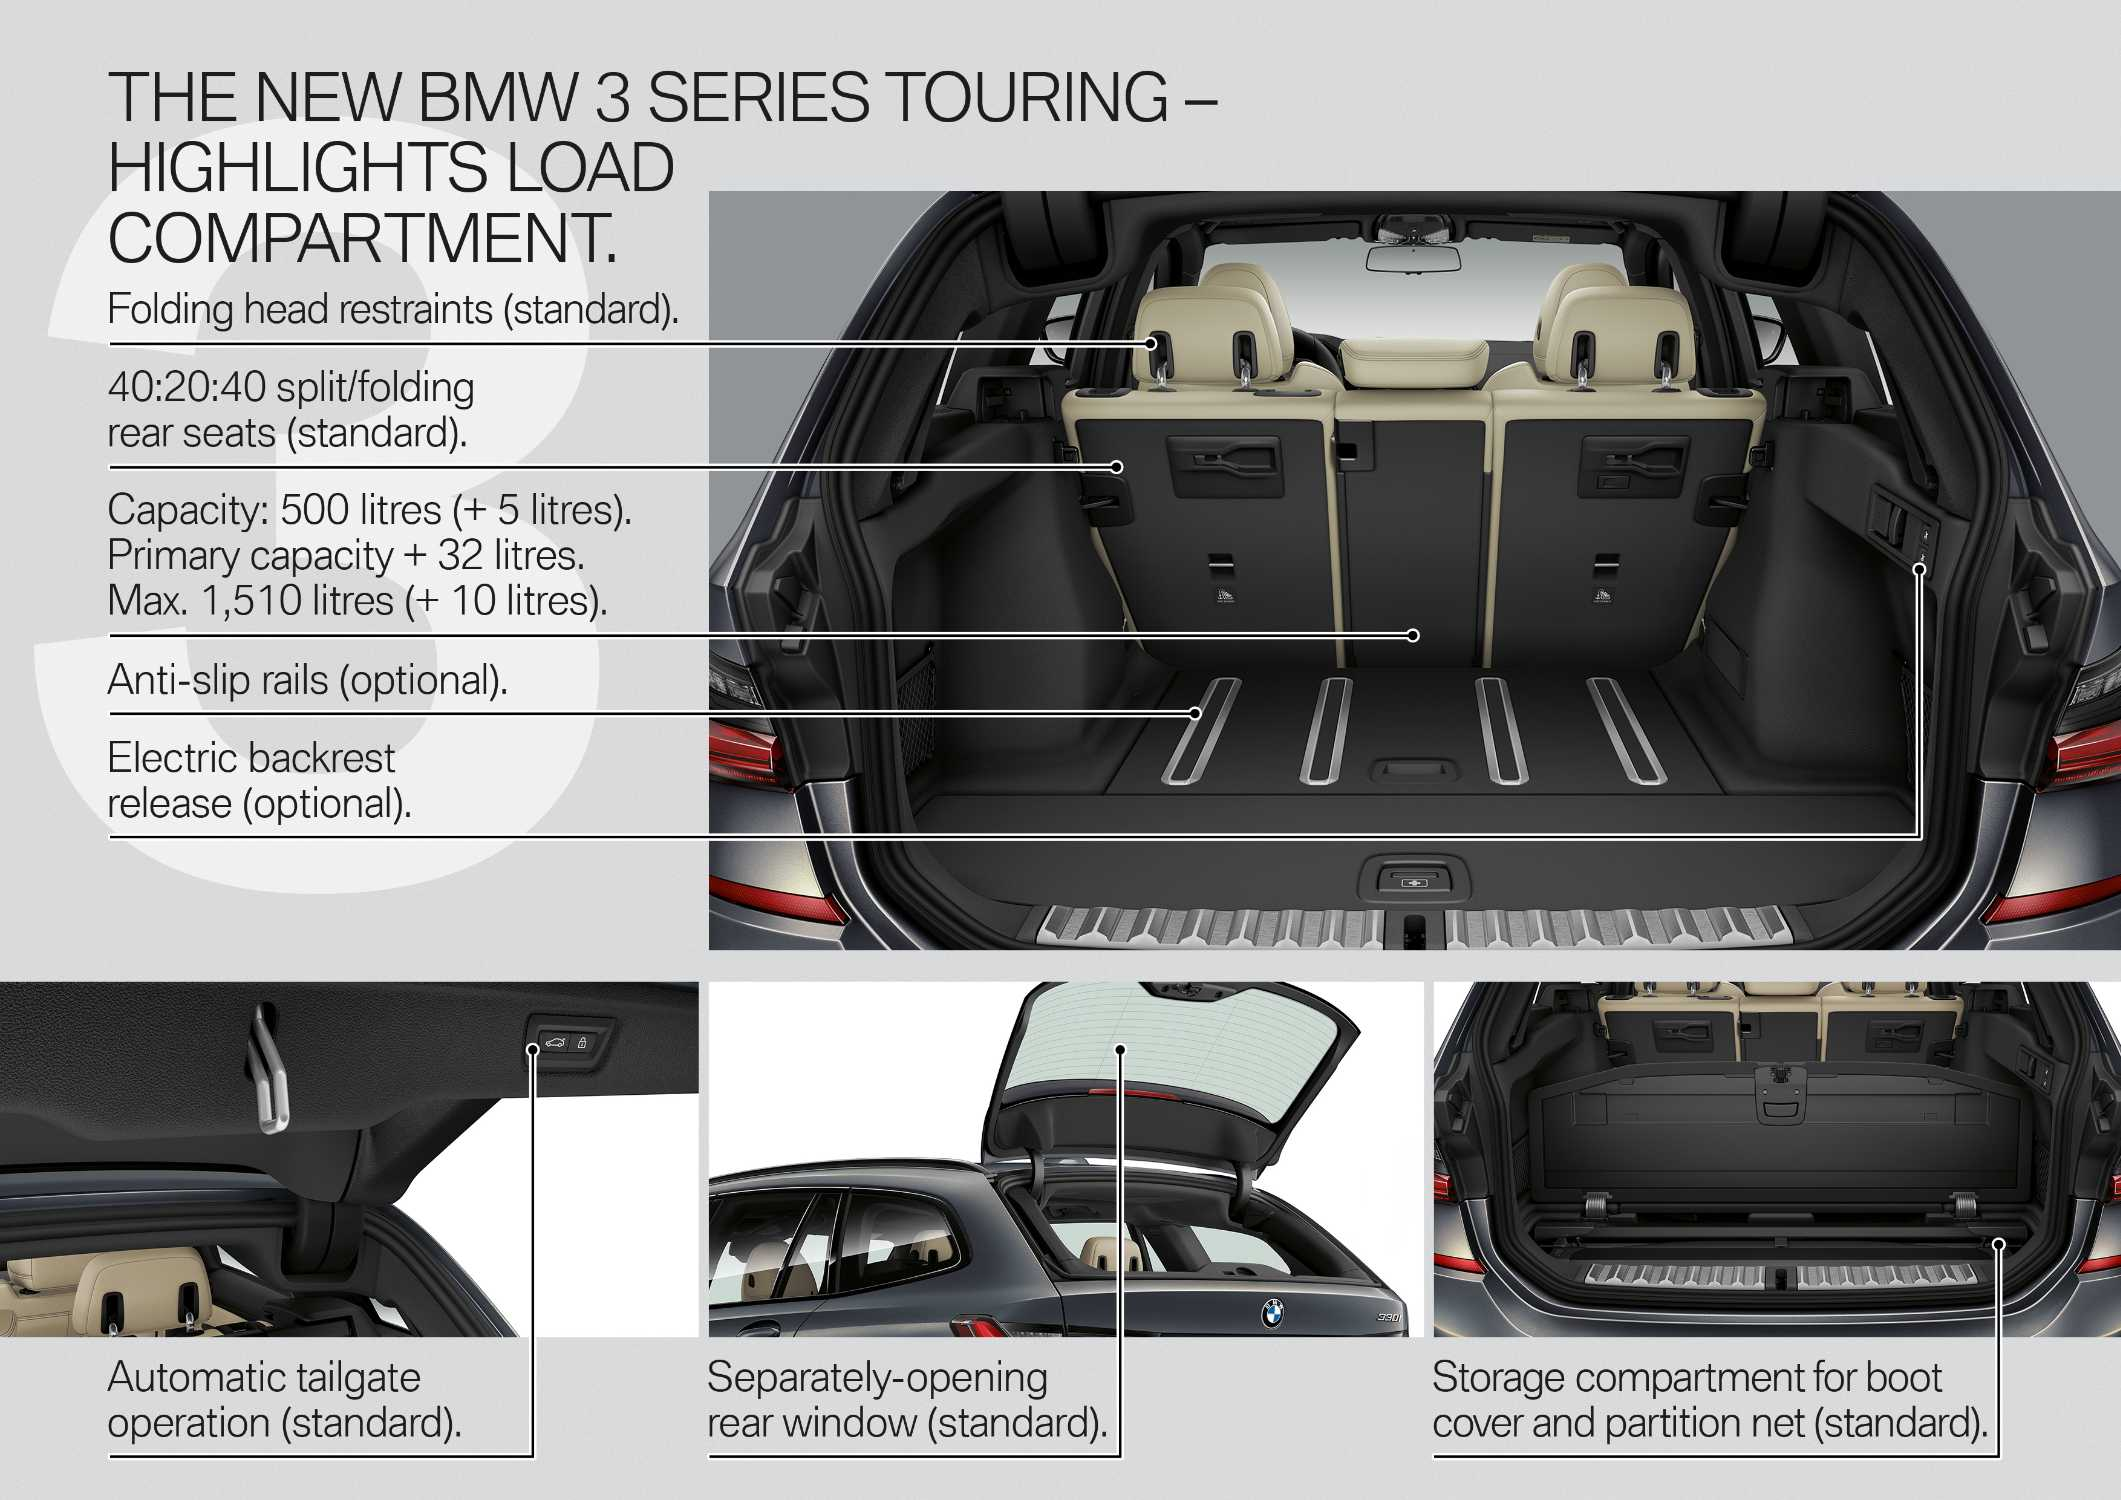 The new BMW 3 Series Touring – Product hightlights (06/2019).